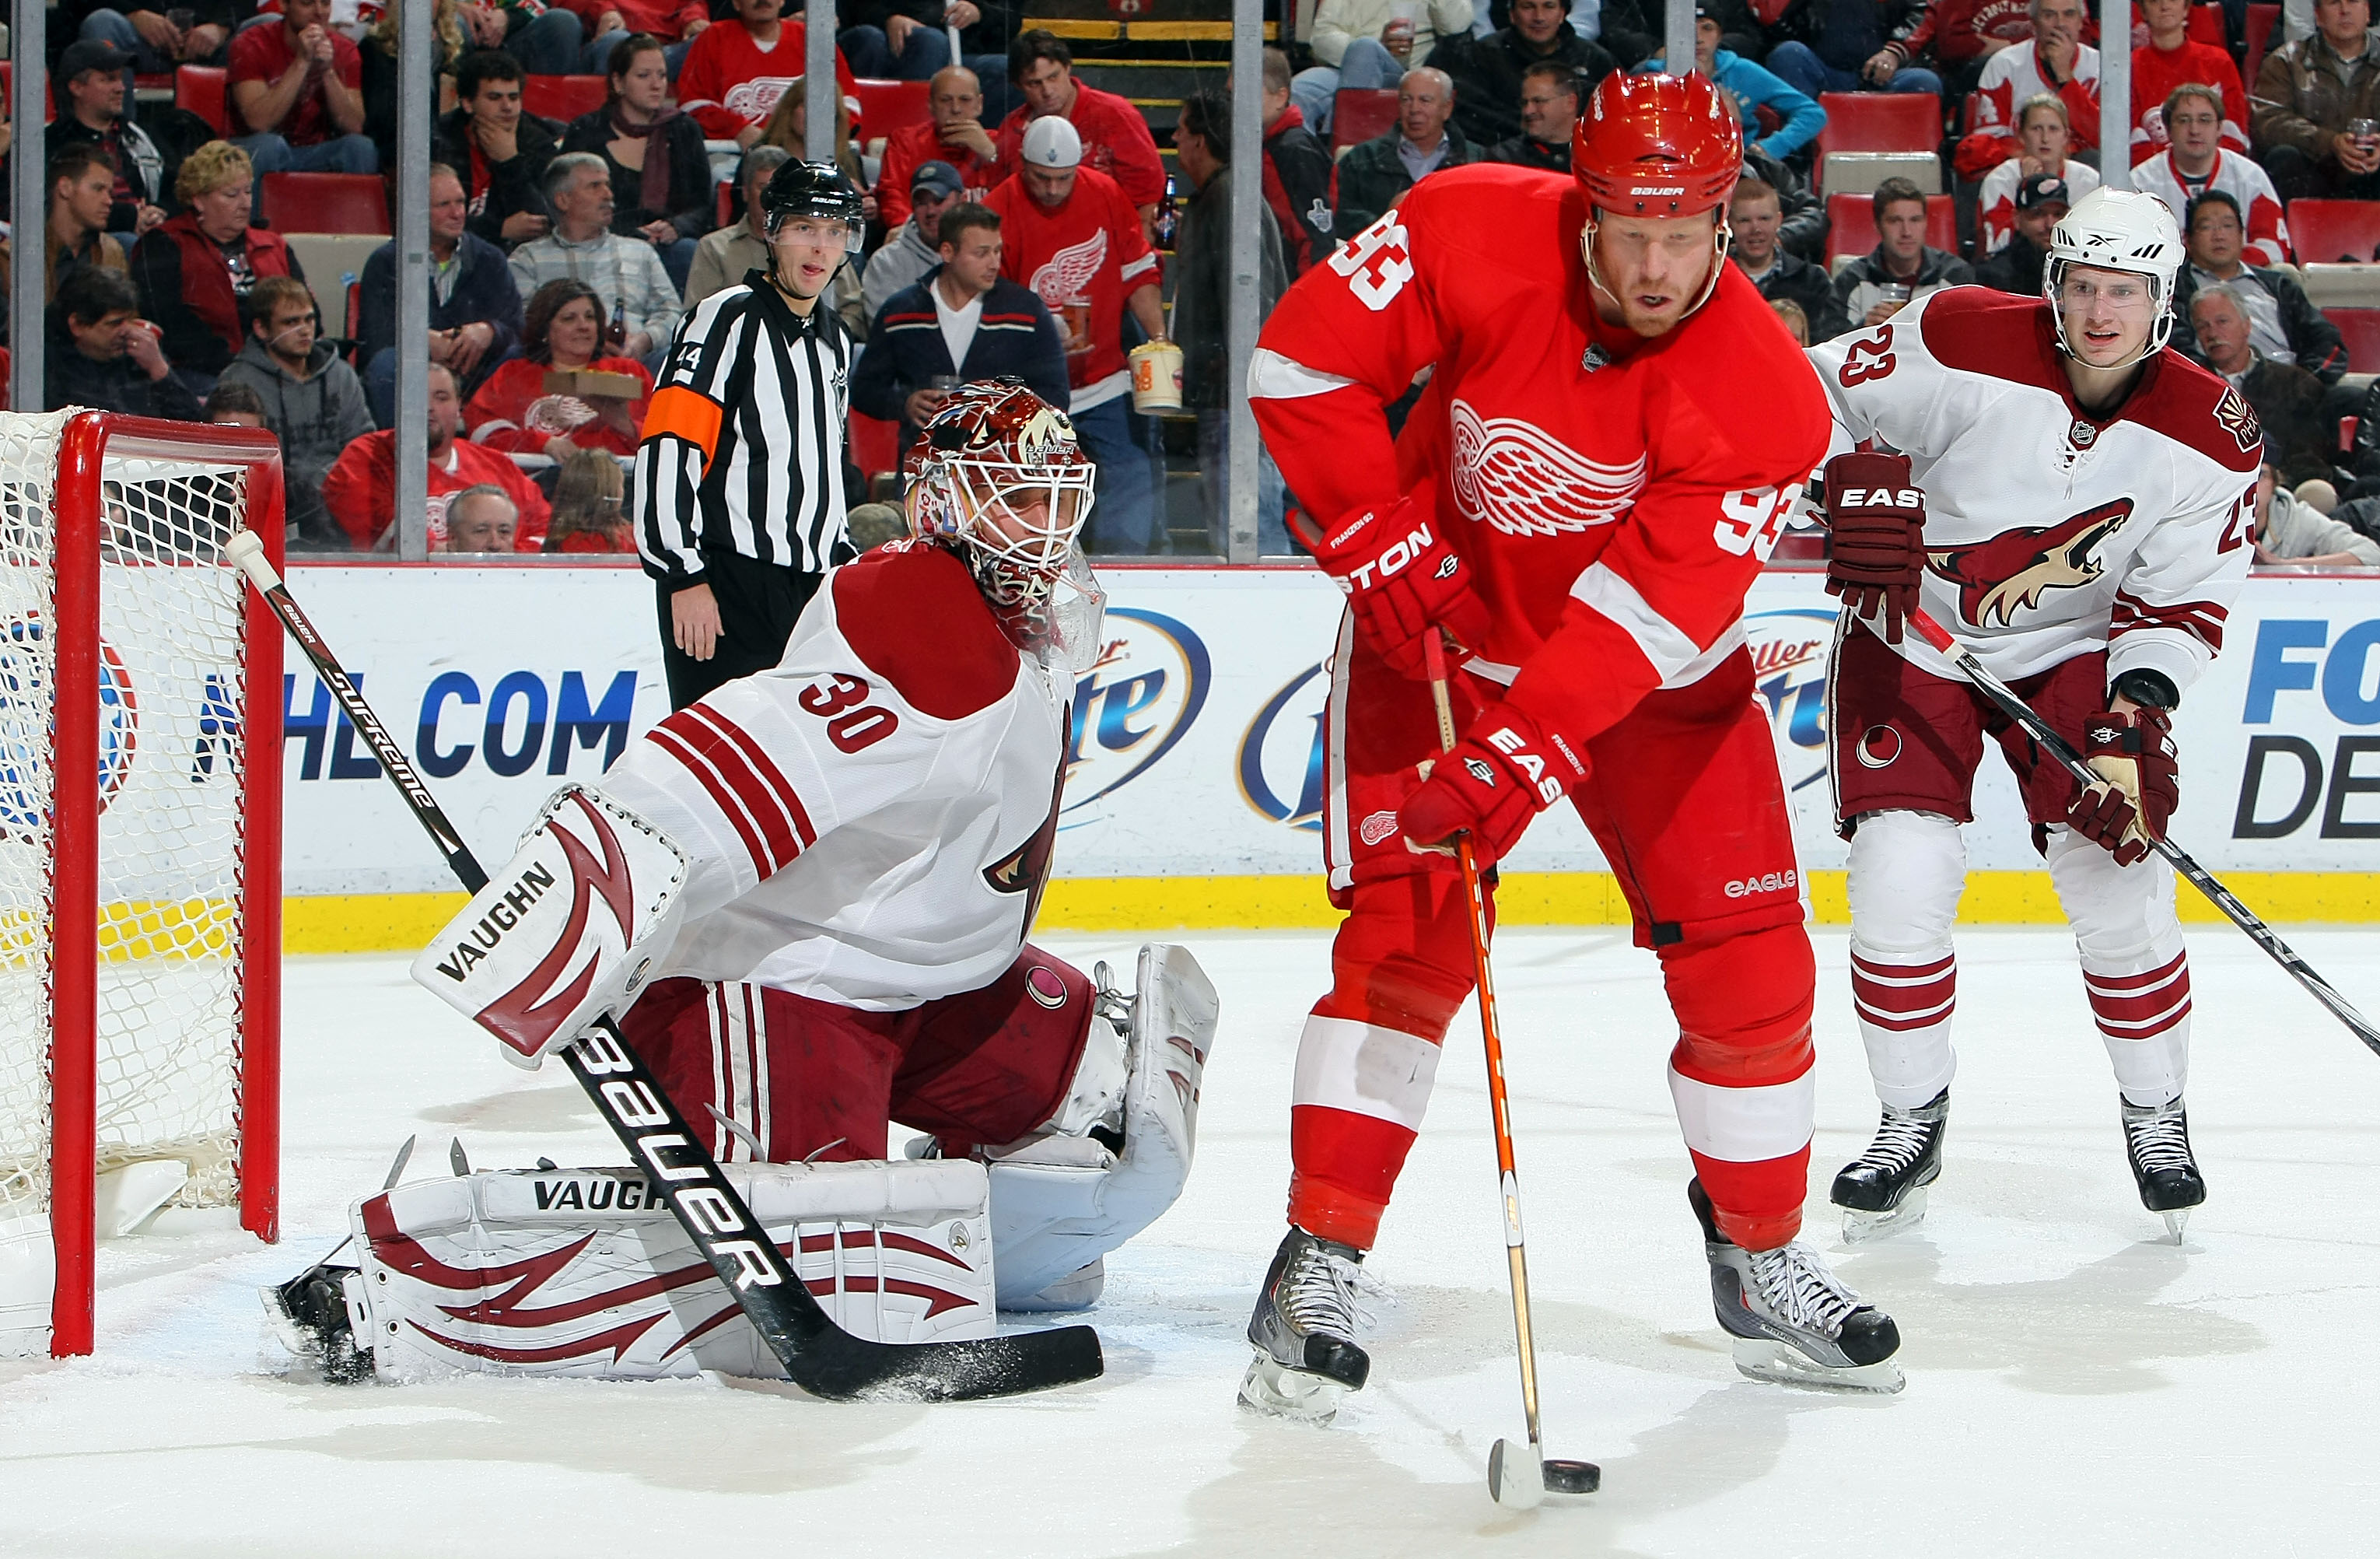 DETROIT - OCTOBER 28:  Oliver Ekman-Larsson #23 of the Phoenix Coyotes looks on as Johan Franzen #93 of the Detroit Red Wings tips a shot past for a goal against Ilya Bryzgalov #30 of the Phoenix Coyotes during their NHL game at Joe Louis Arena on October